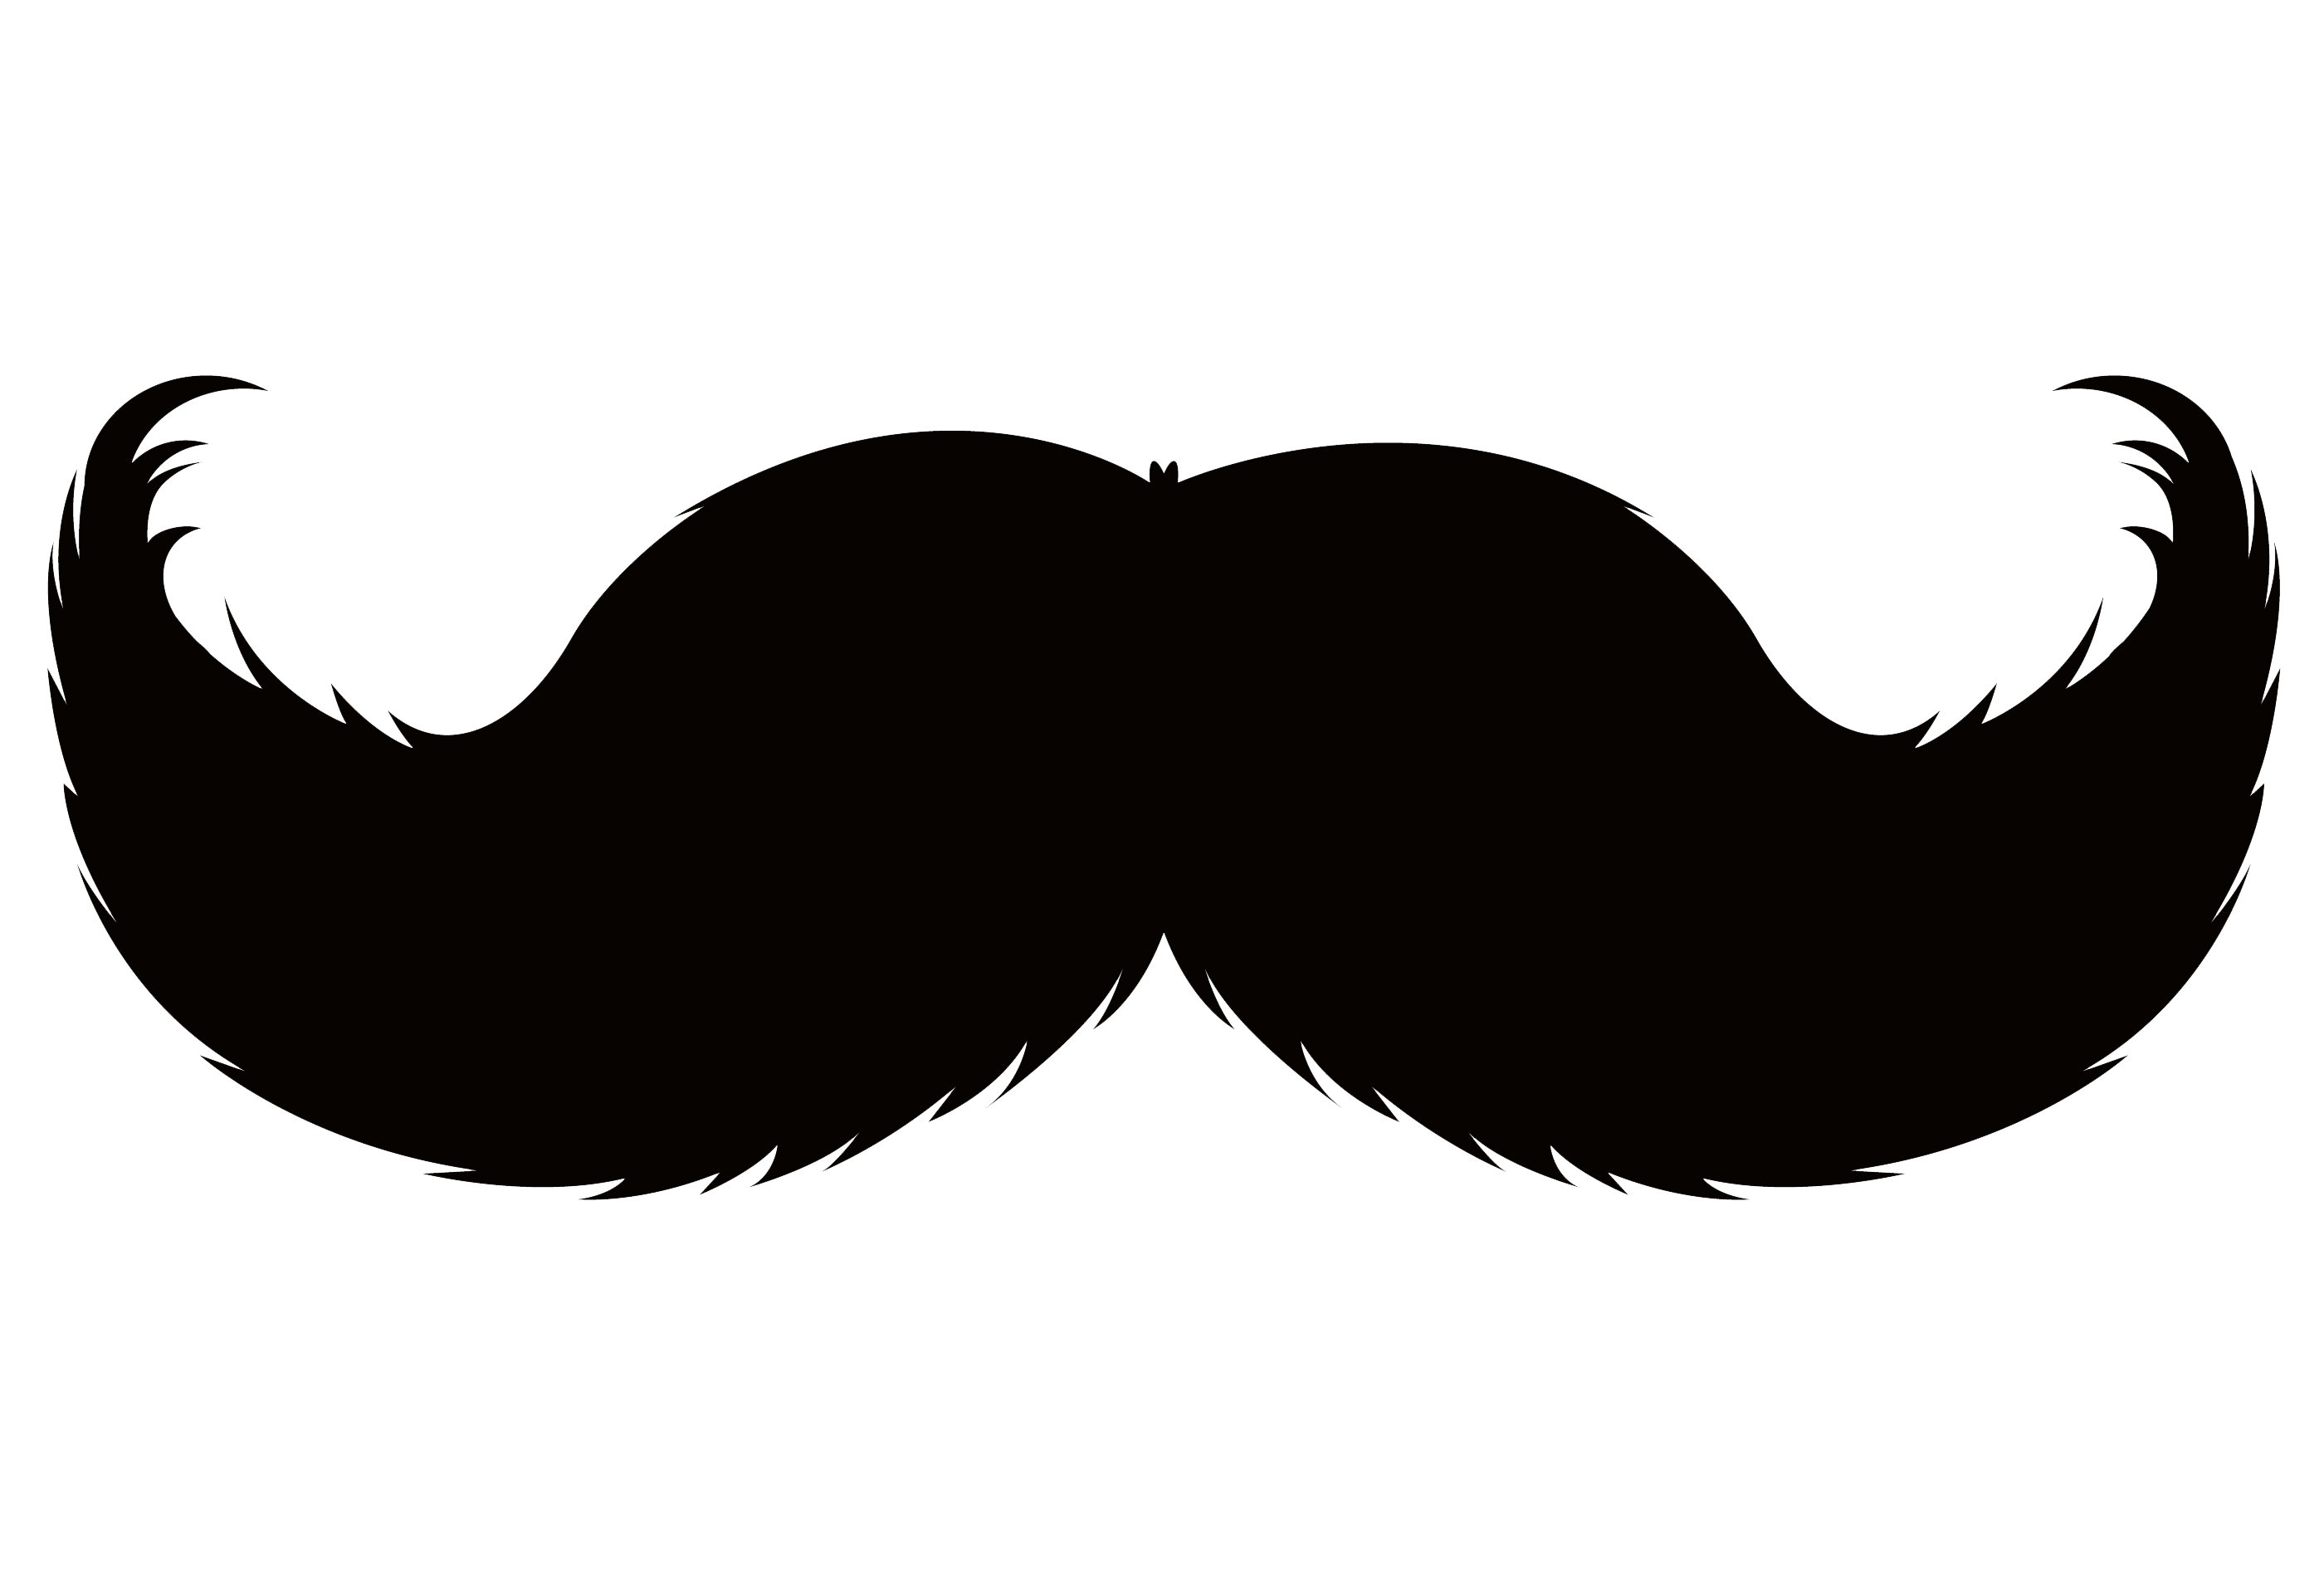 Mustache clipart free download graphic freeuse download Mustache Png (+) - Free Download | fourjay.org graphic freeuse download